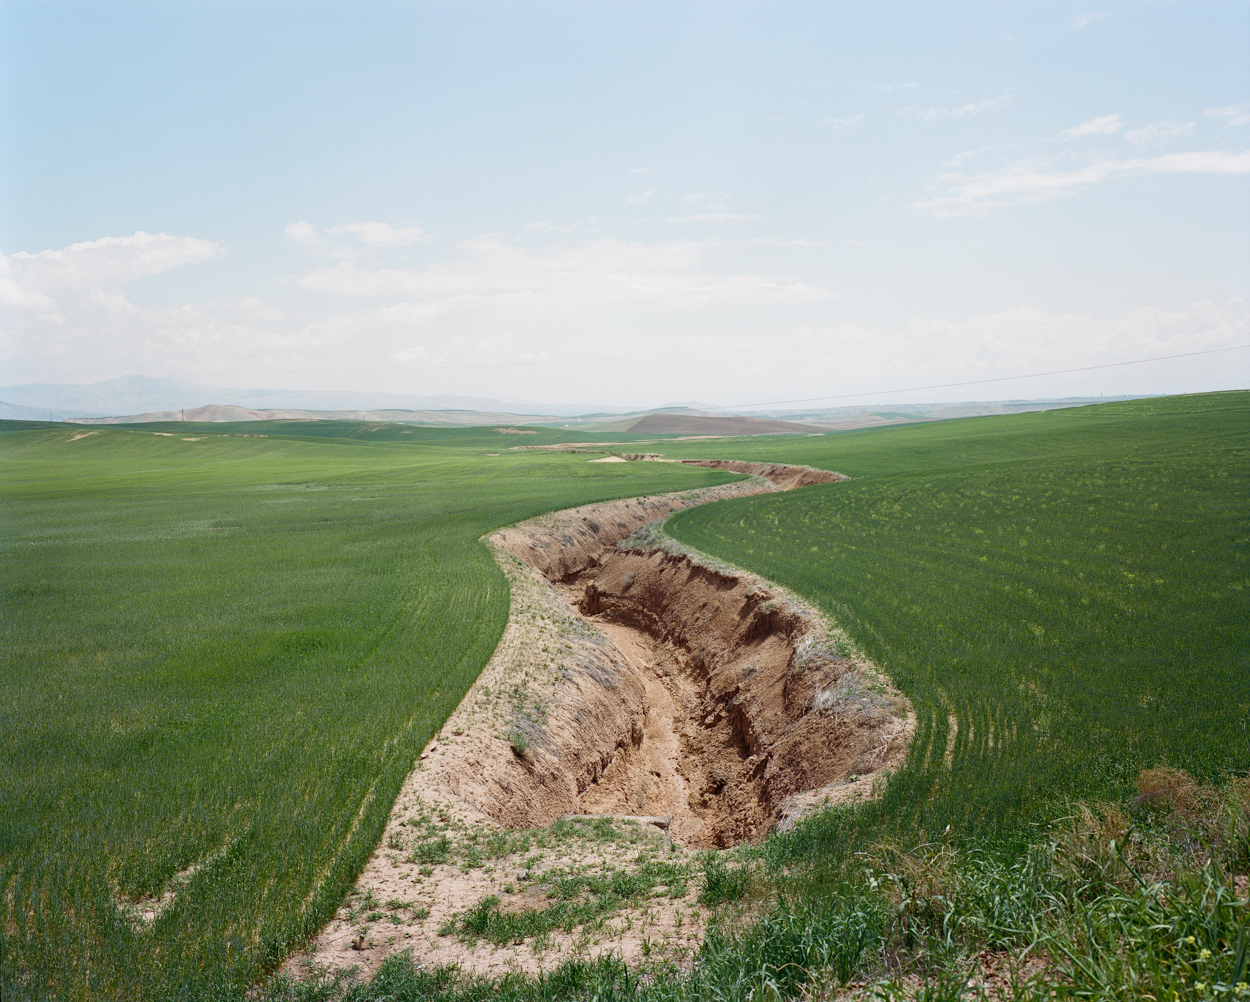 View of rice fields in the southern part of Turkey